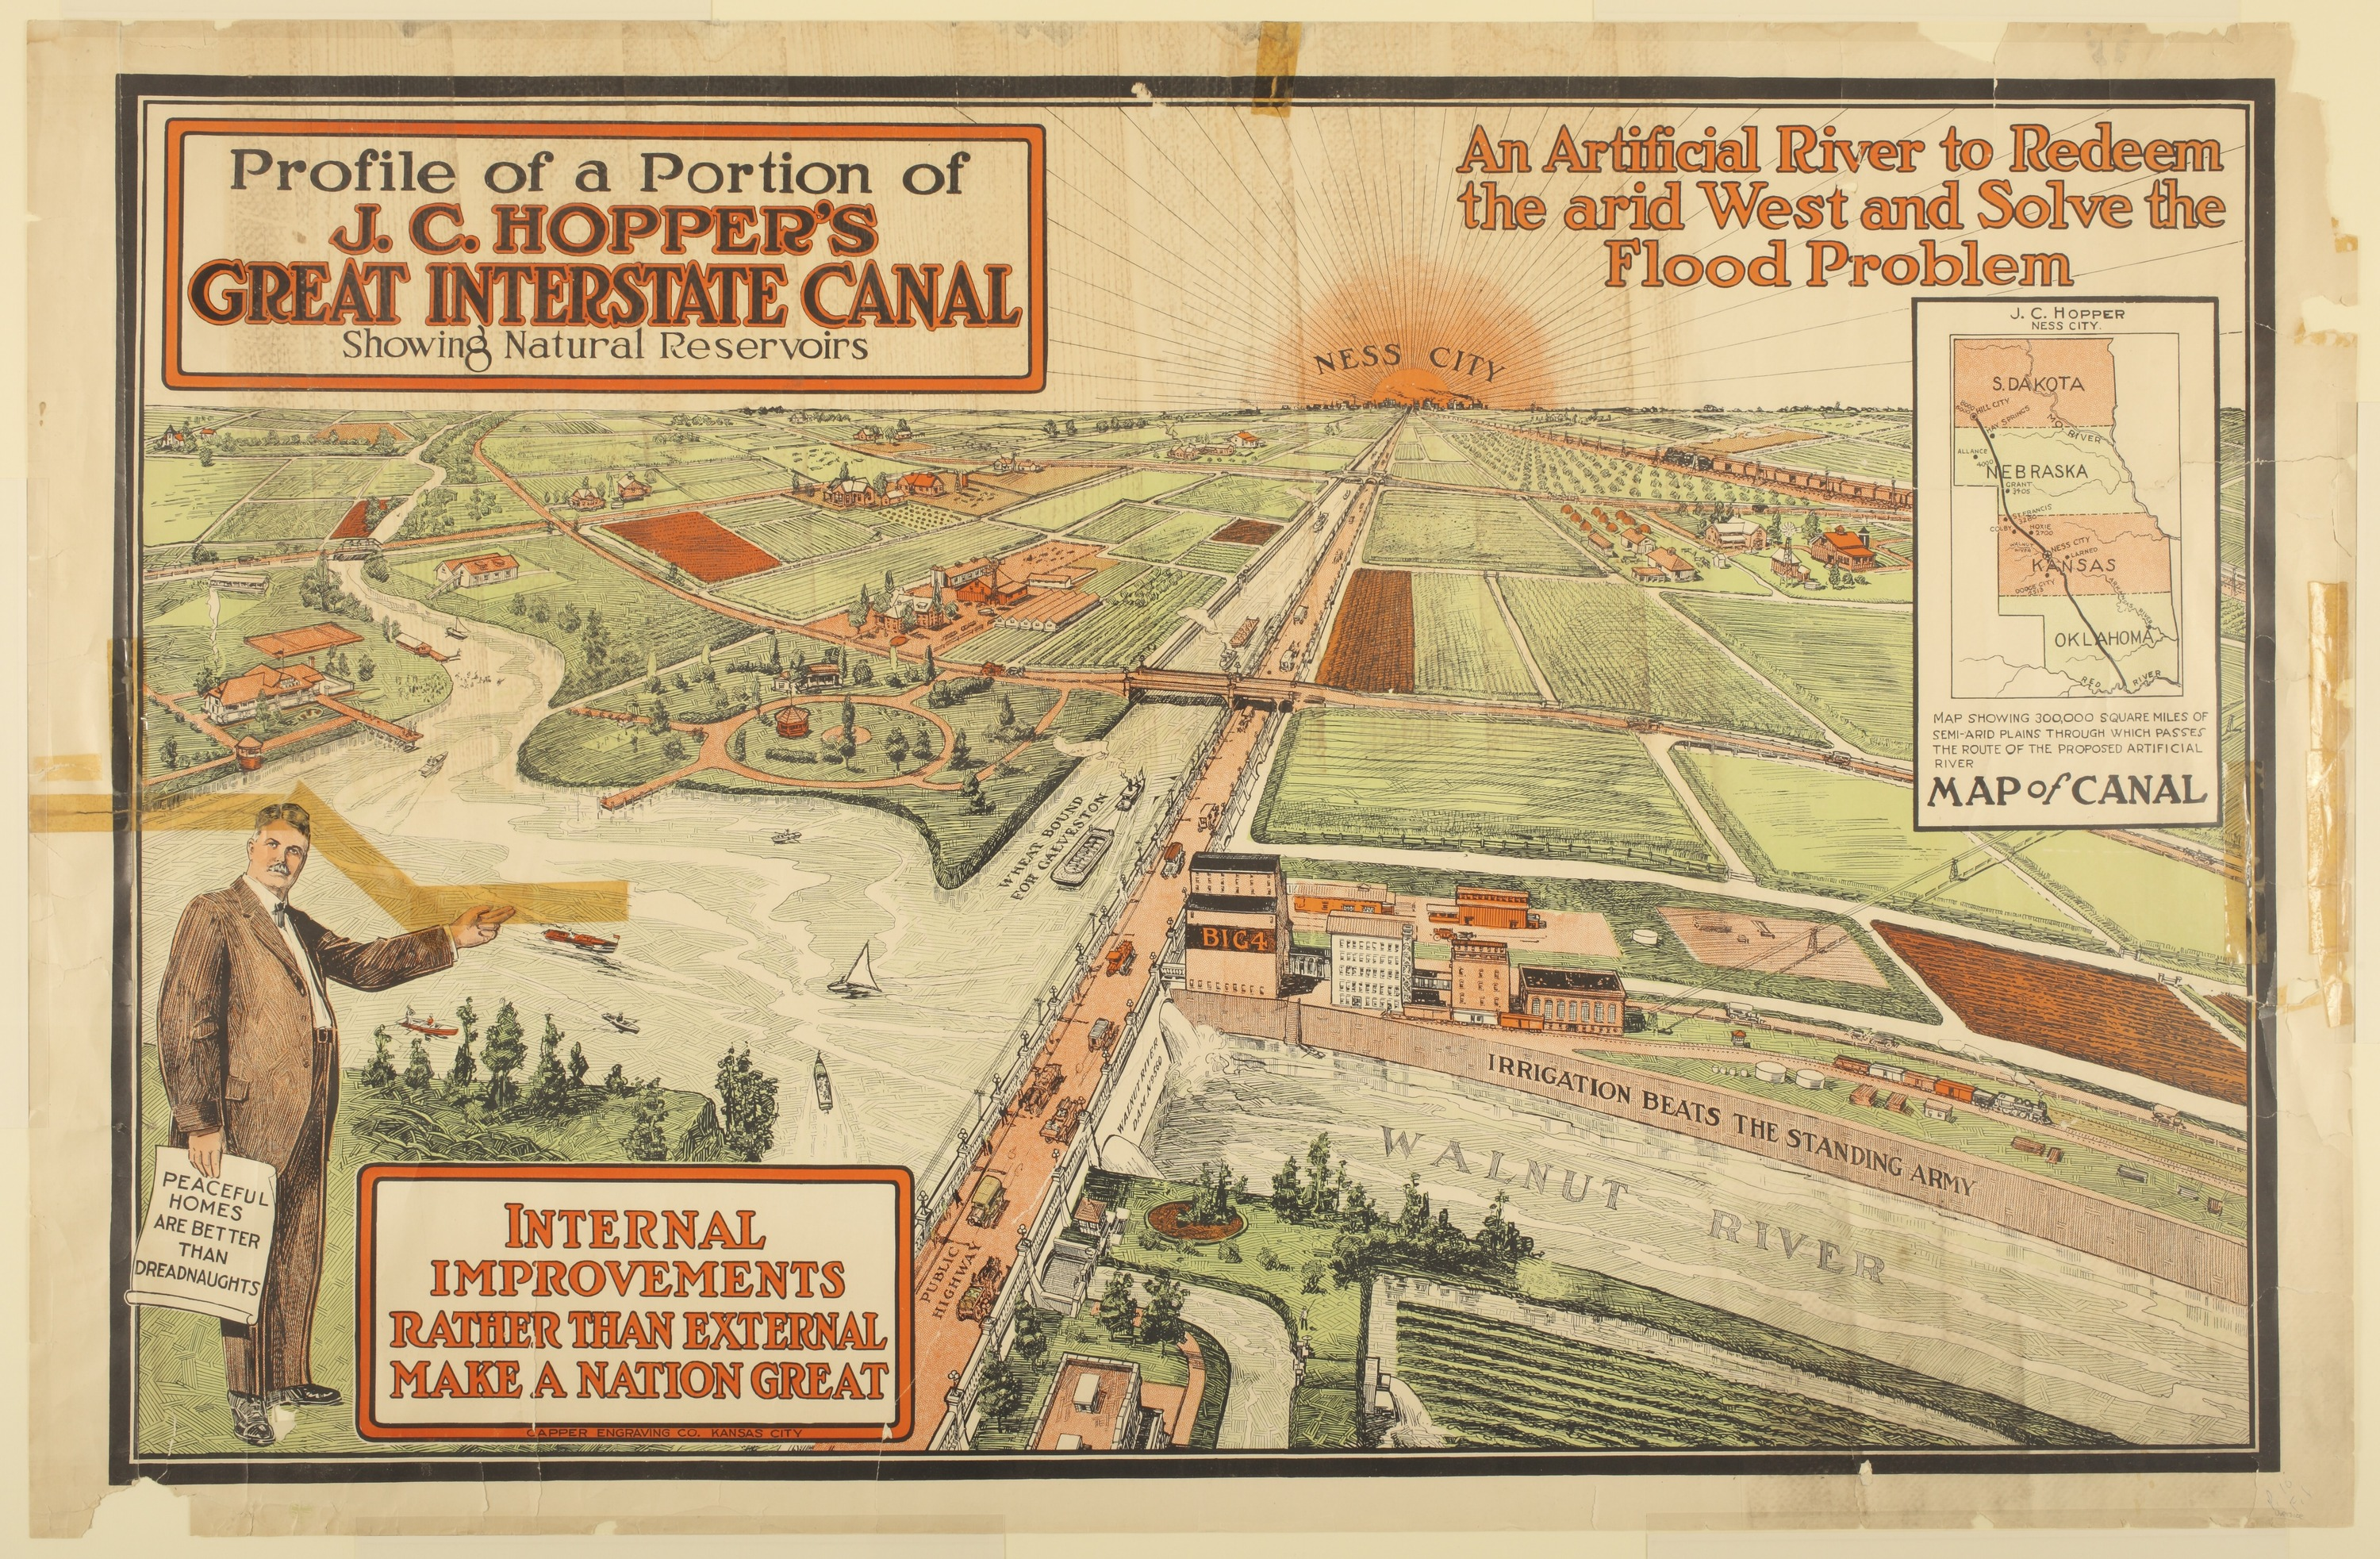 Profile of a portion of J. C. Hopper's Great Interstate Canal showing natural reservoirs